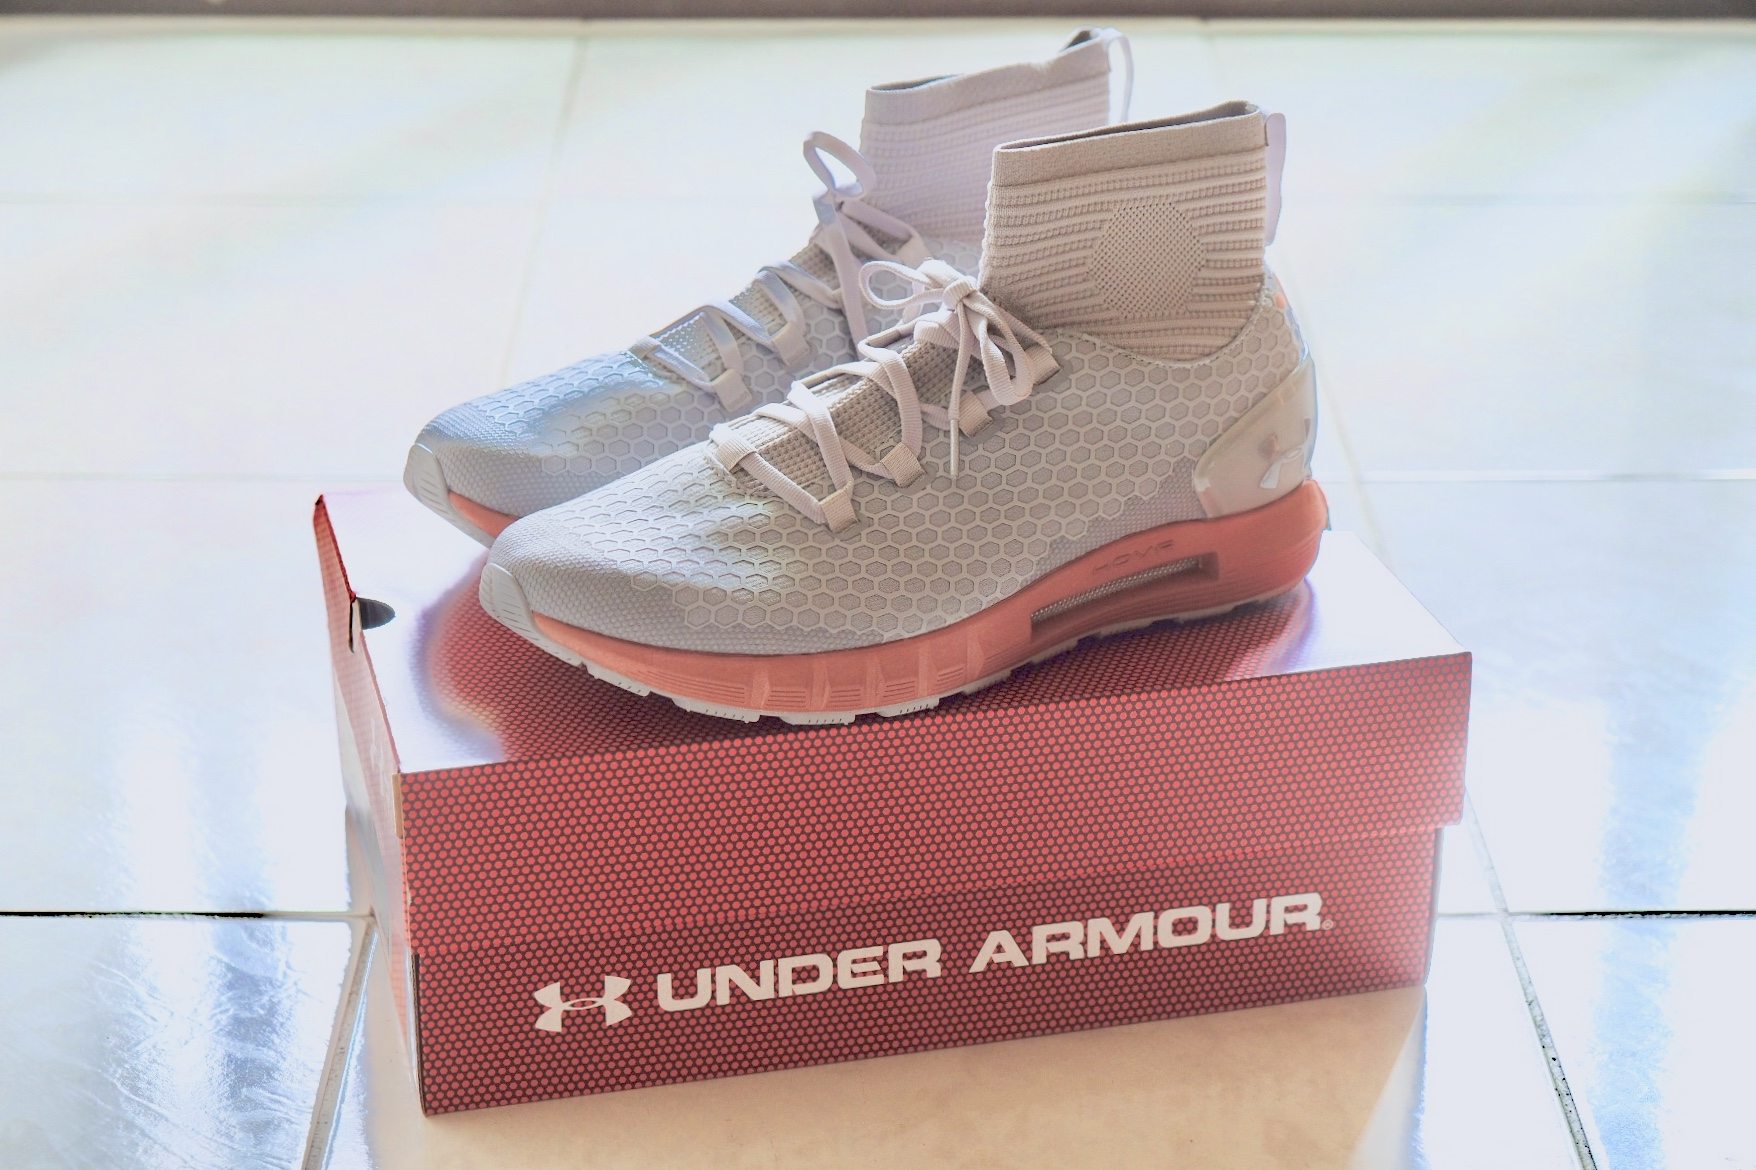 under-armour-hovr-cgr-reactor-mid